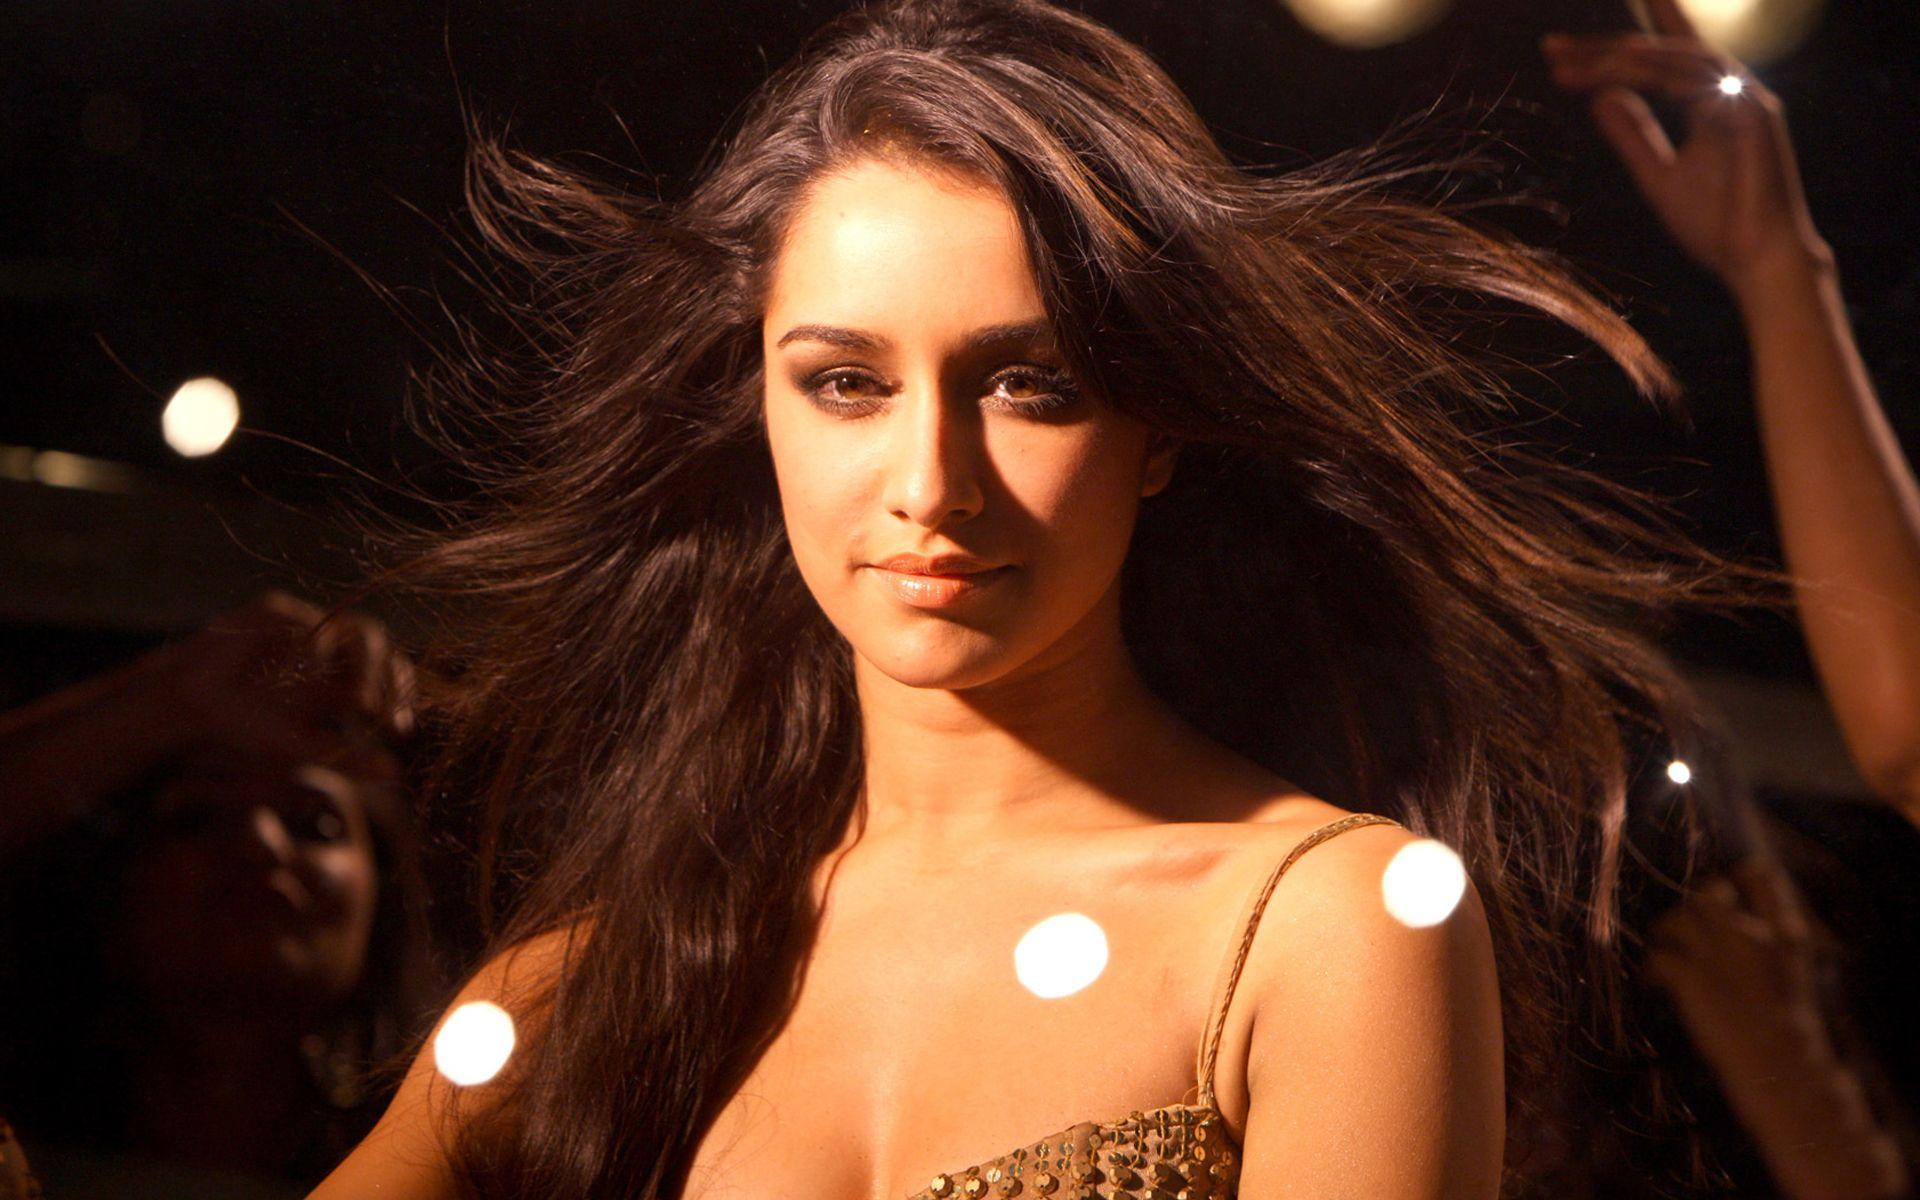 shraddha_kapoor_wallpaper_97338039